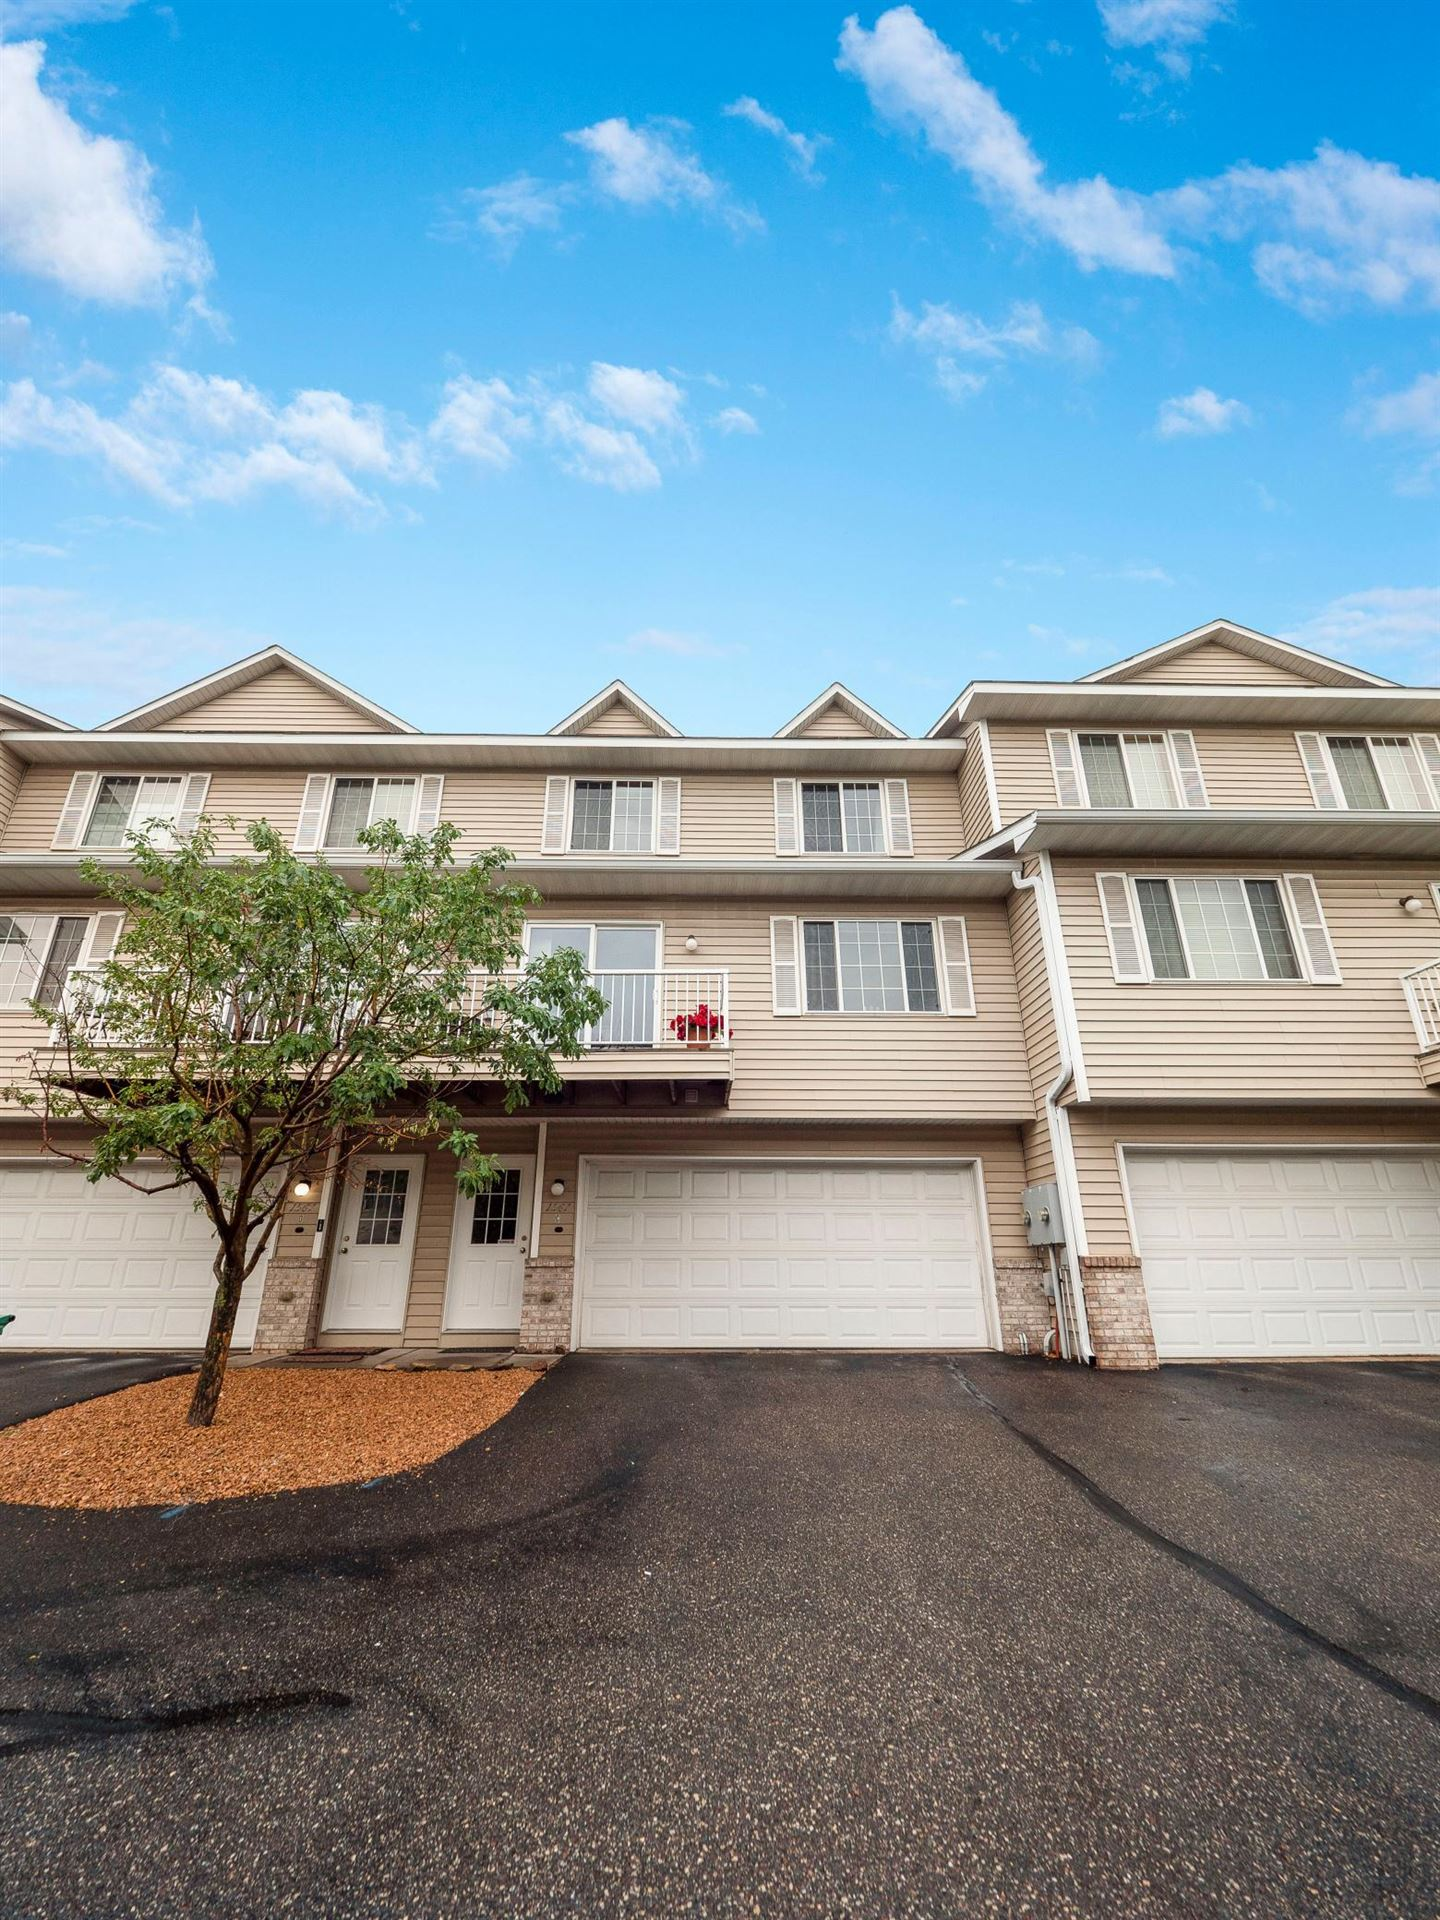 1567 County Road D E #C, Maplewood, MN 55109 - MLS#: 5567434